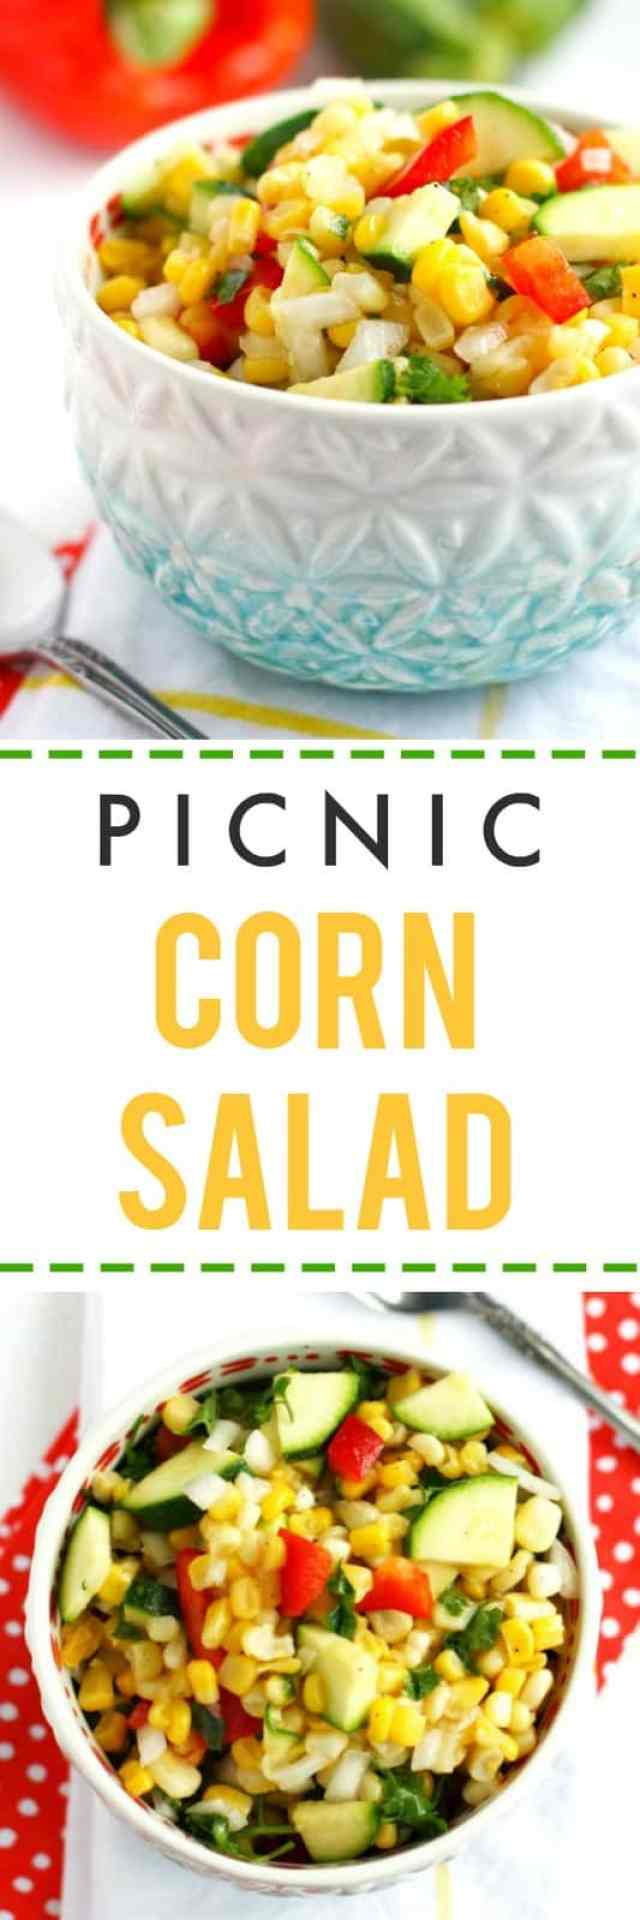 This picnic corn salad is just right for summer! Fresh, healthy, and so colorful - perfect for a party!